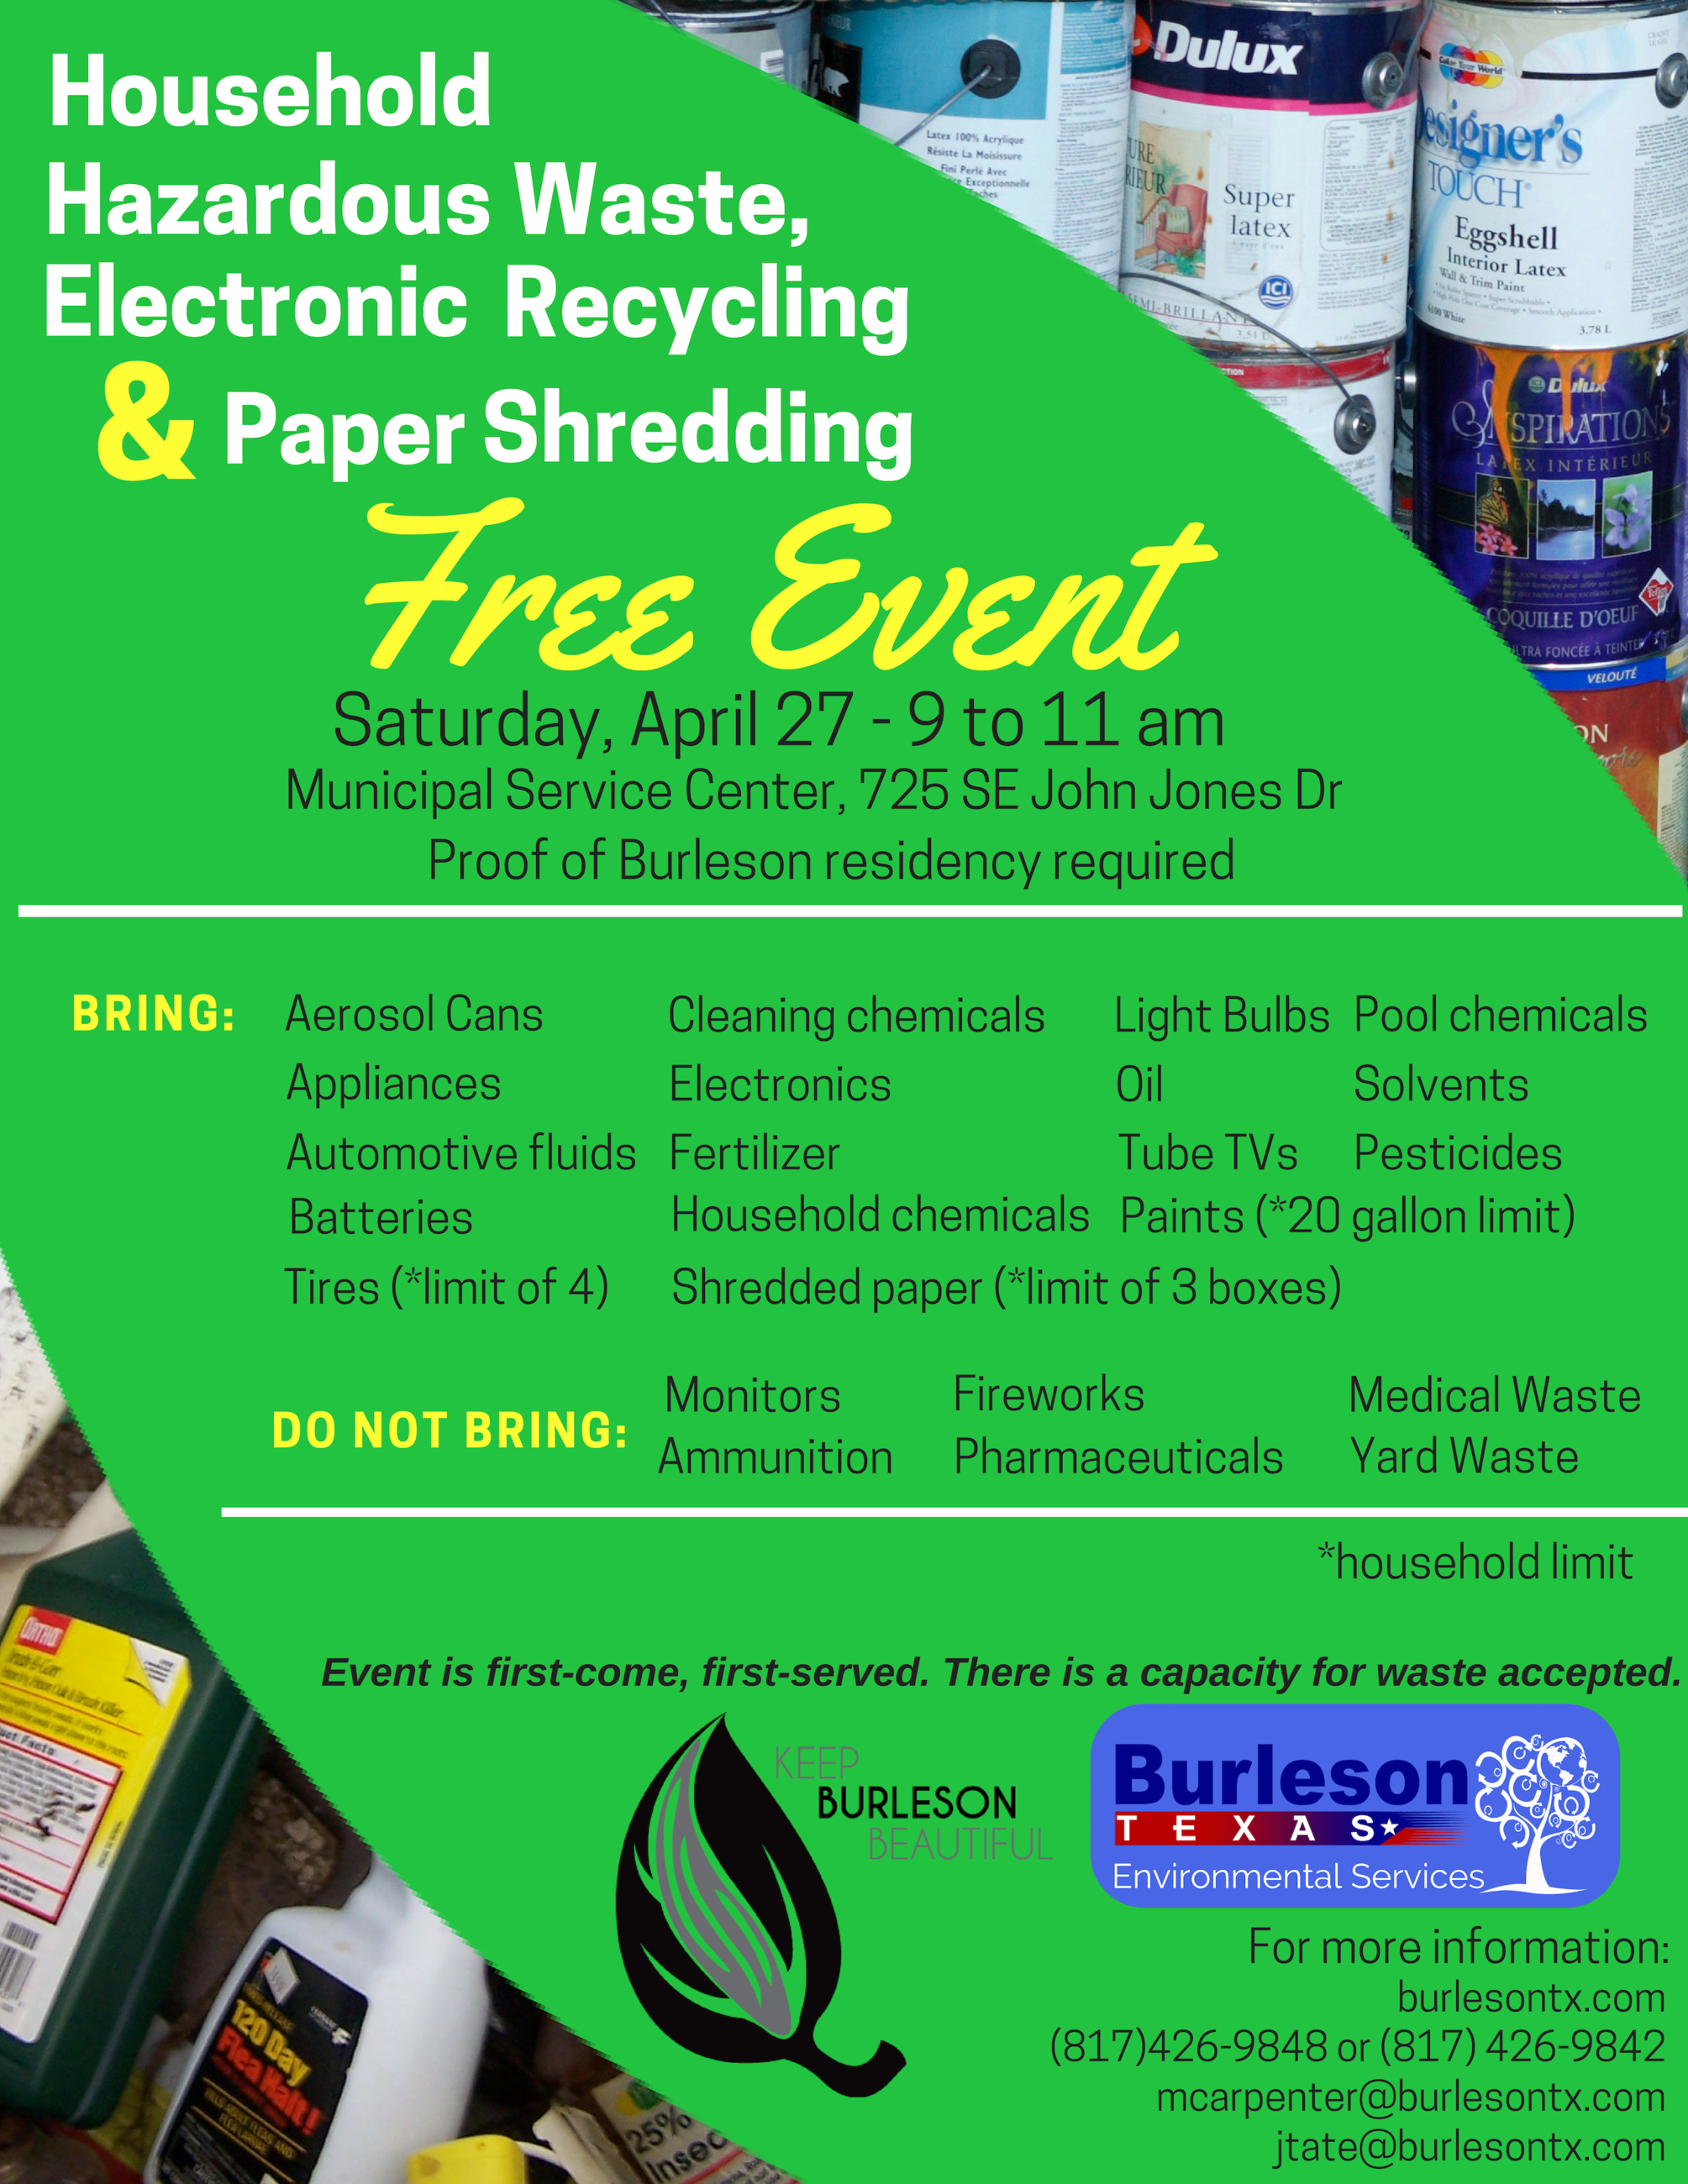 Household Hazardous Waste, Electronic Recycling, Paper Shredding